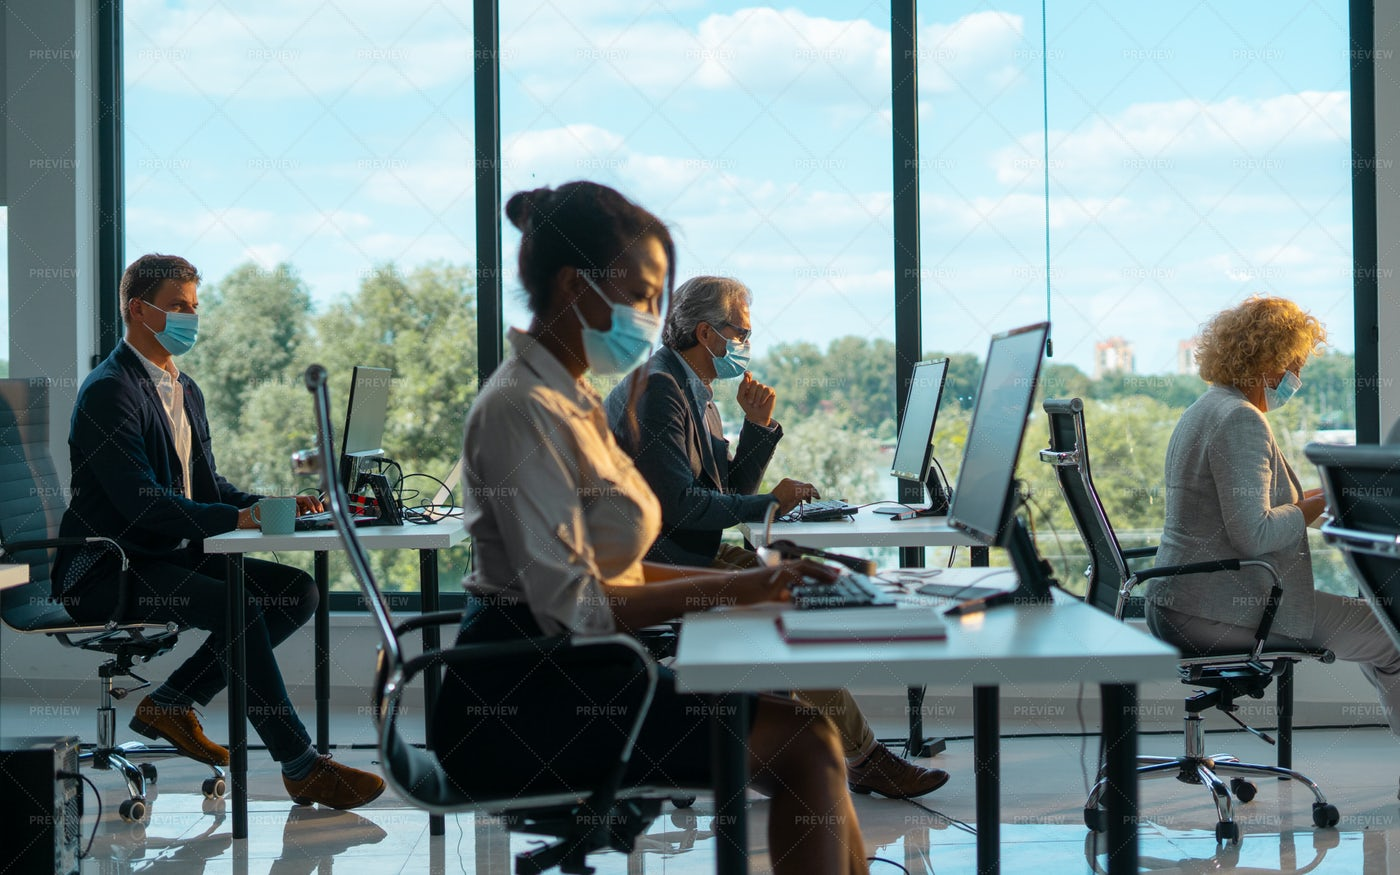 Office Atmosphere During COVID-19: Stock Photos